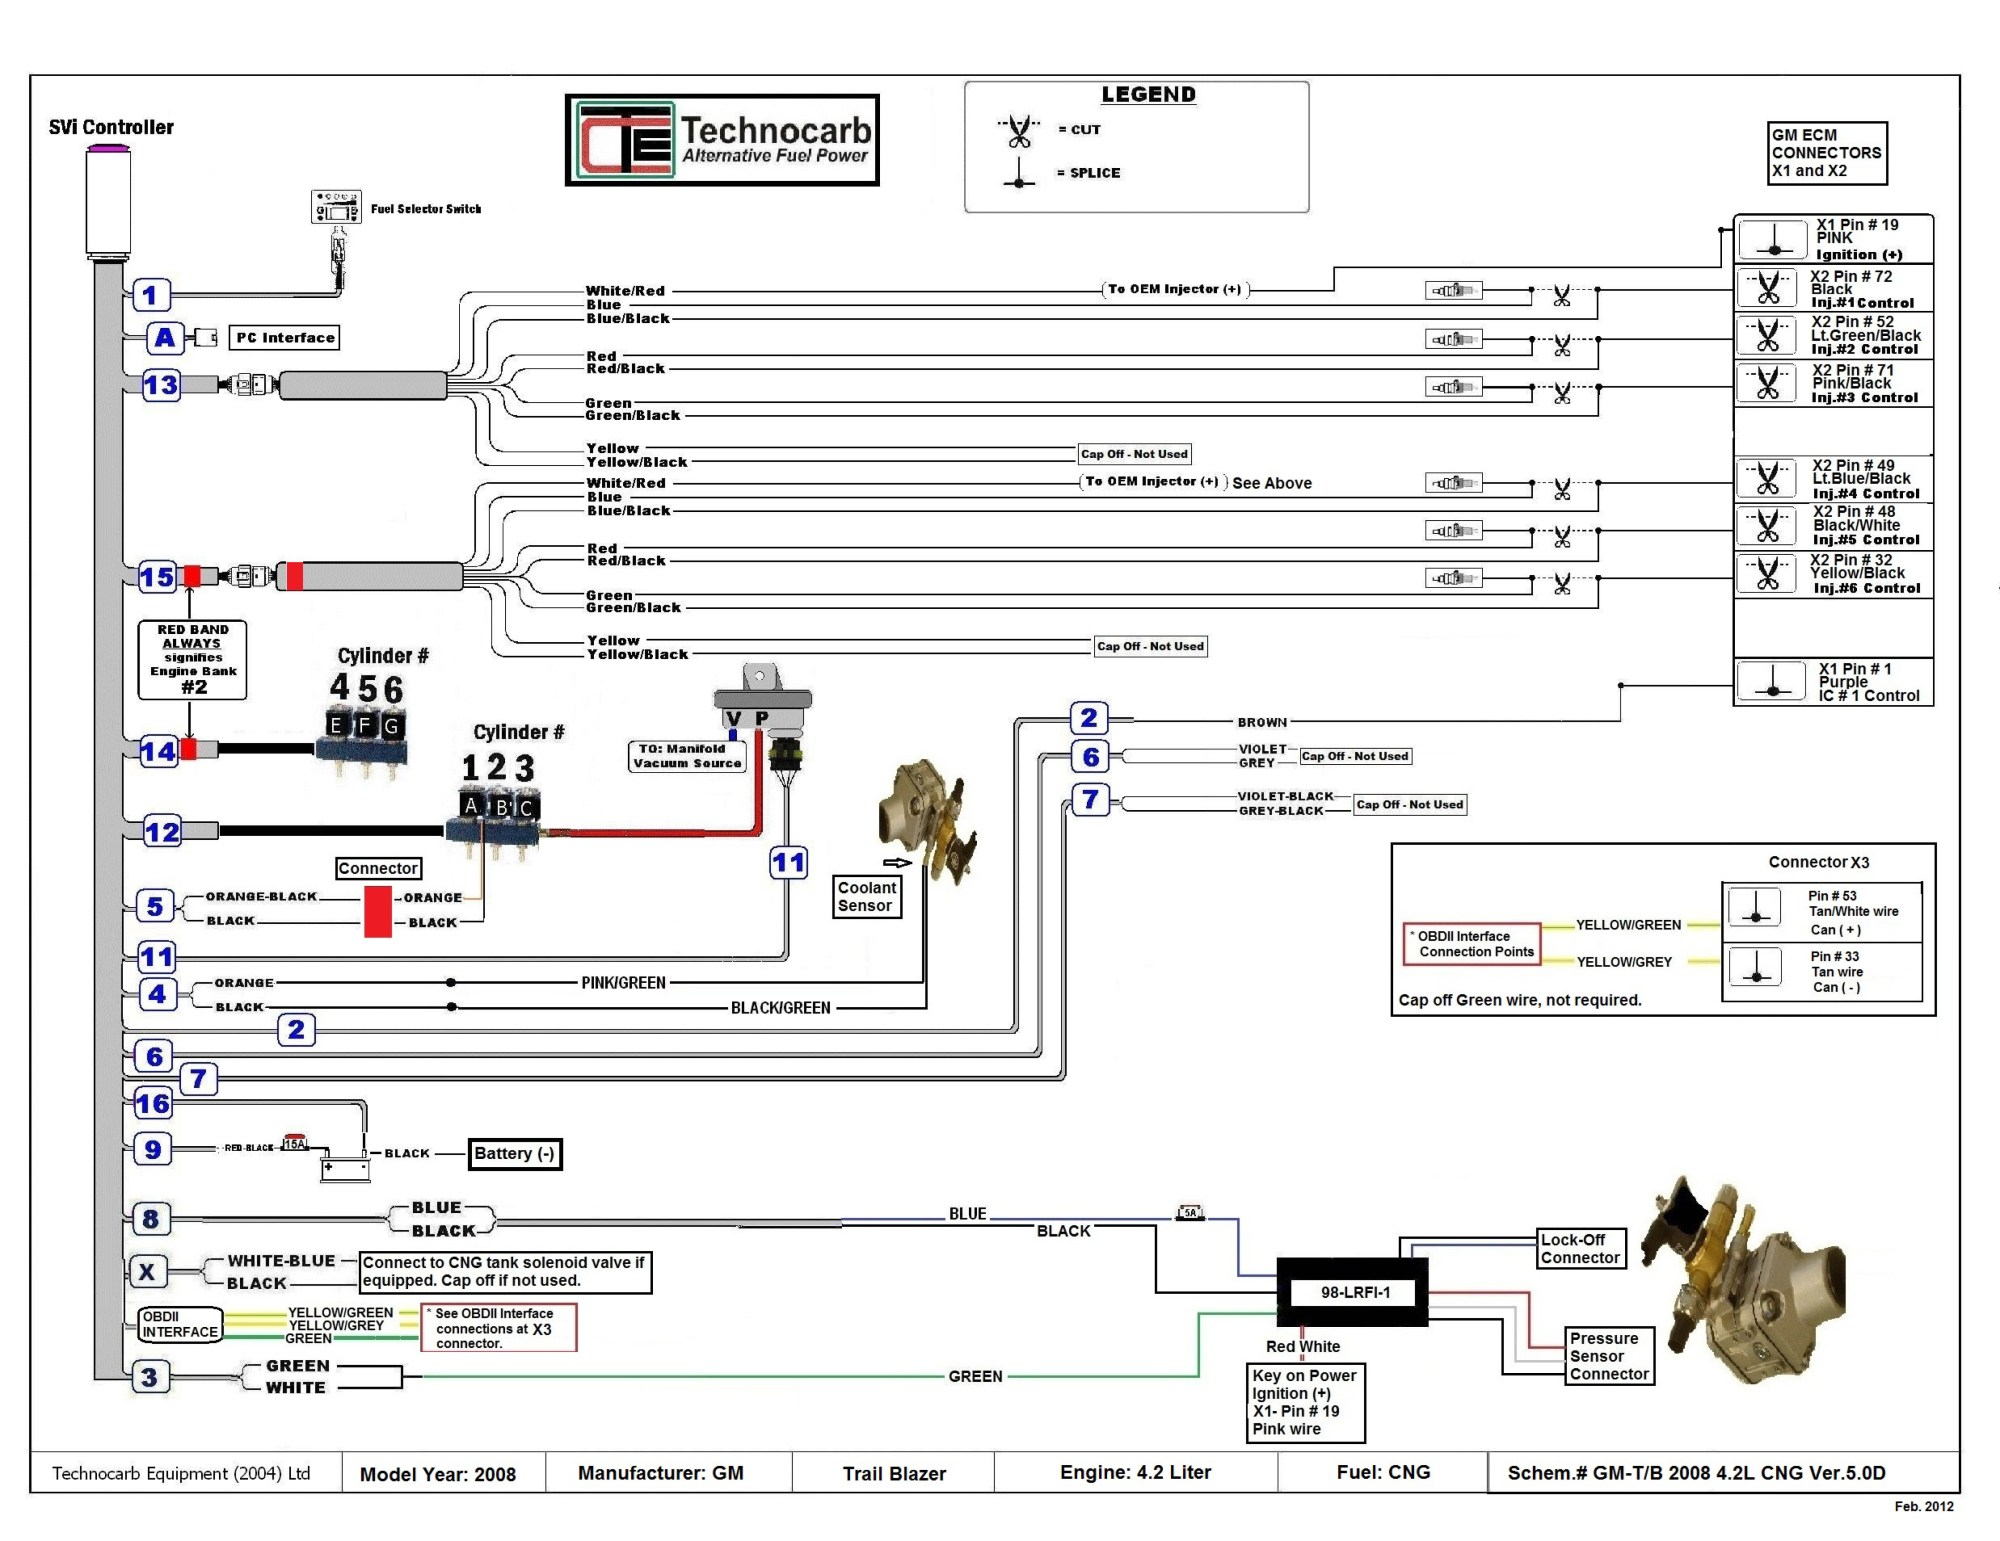 hight resolution of trailblazer wire schematic wiring diagram load 2007 trailblazer wiring schematic 2004 trailblazer wiring harness wiring diagram